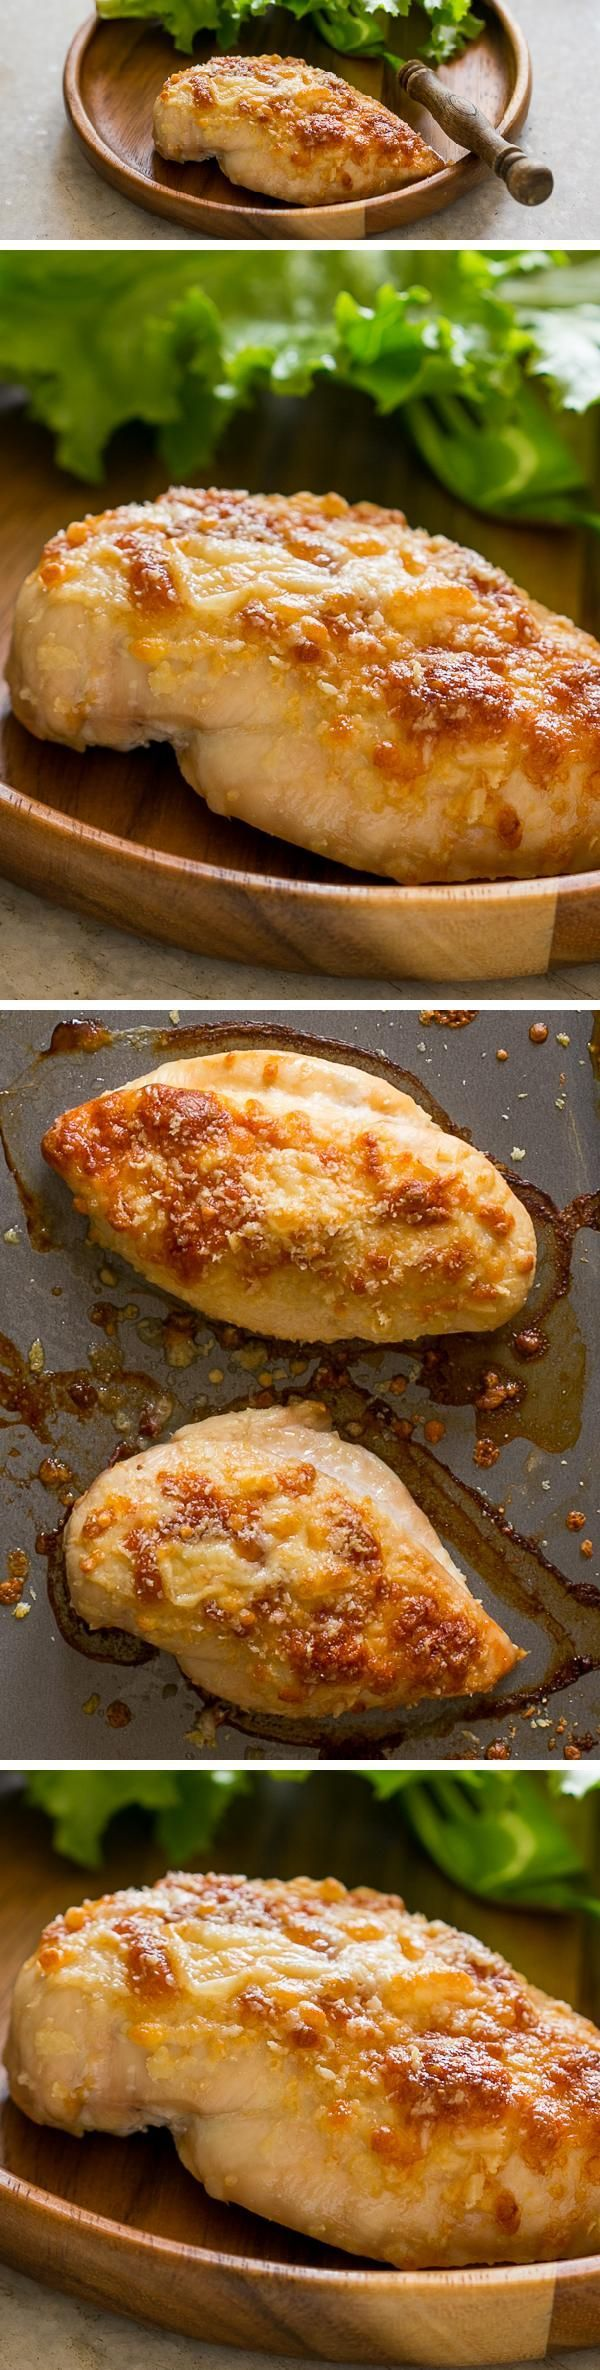 The easiest five ingredient BAKED RANCH CHICKEN made with ranch dressing and seasoning mix that is going to become your favorite dinner option.